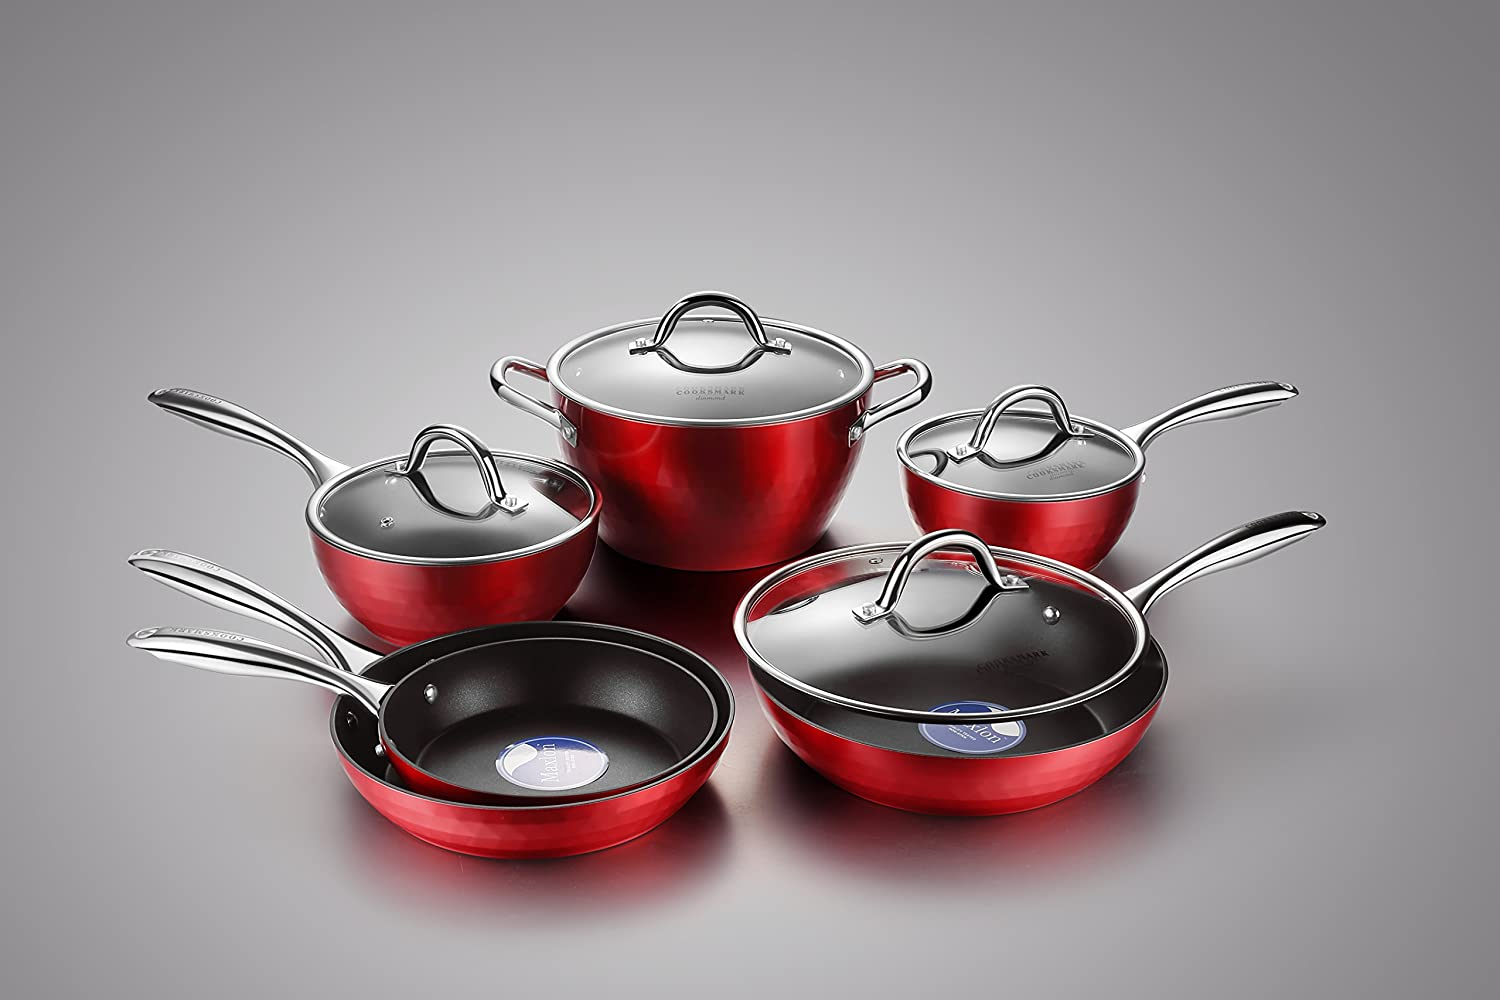 Cooksmark Induction cookware Diamond-Infused Nonstick Cookware Set, Scratch-Resistant Pots and Pans Set with Glass Lids, Dishwasher Safe Oven Safe 10-Piece, Red DD702